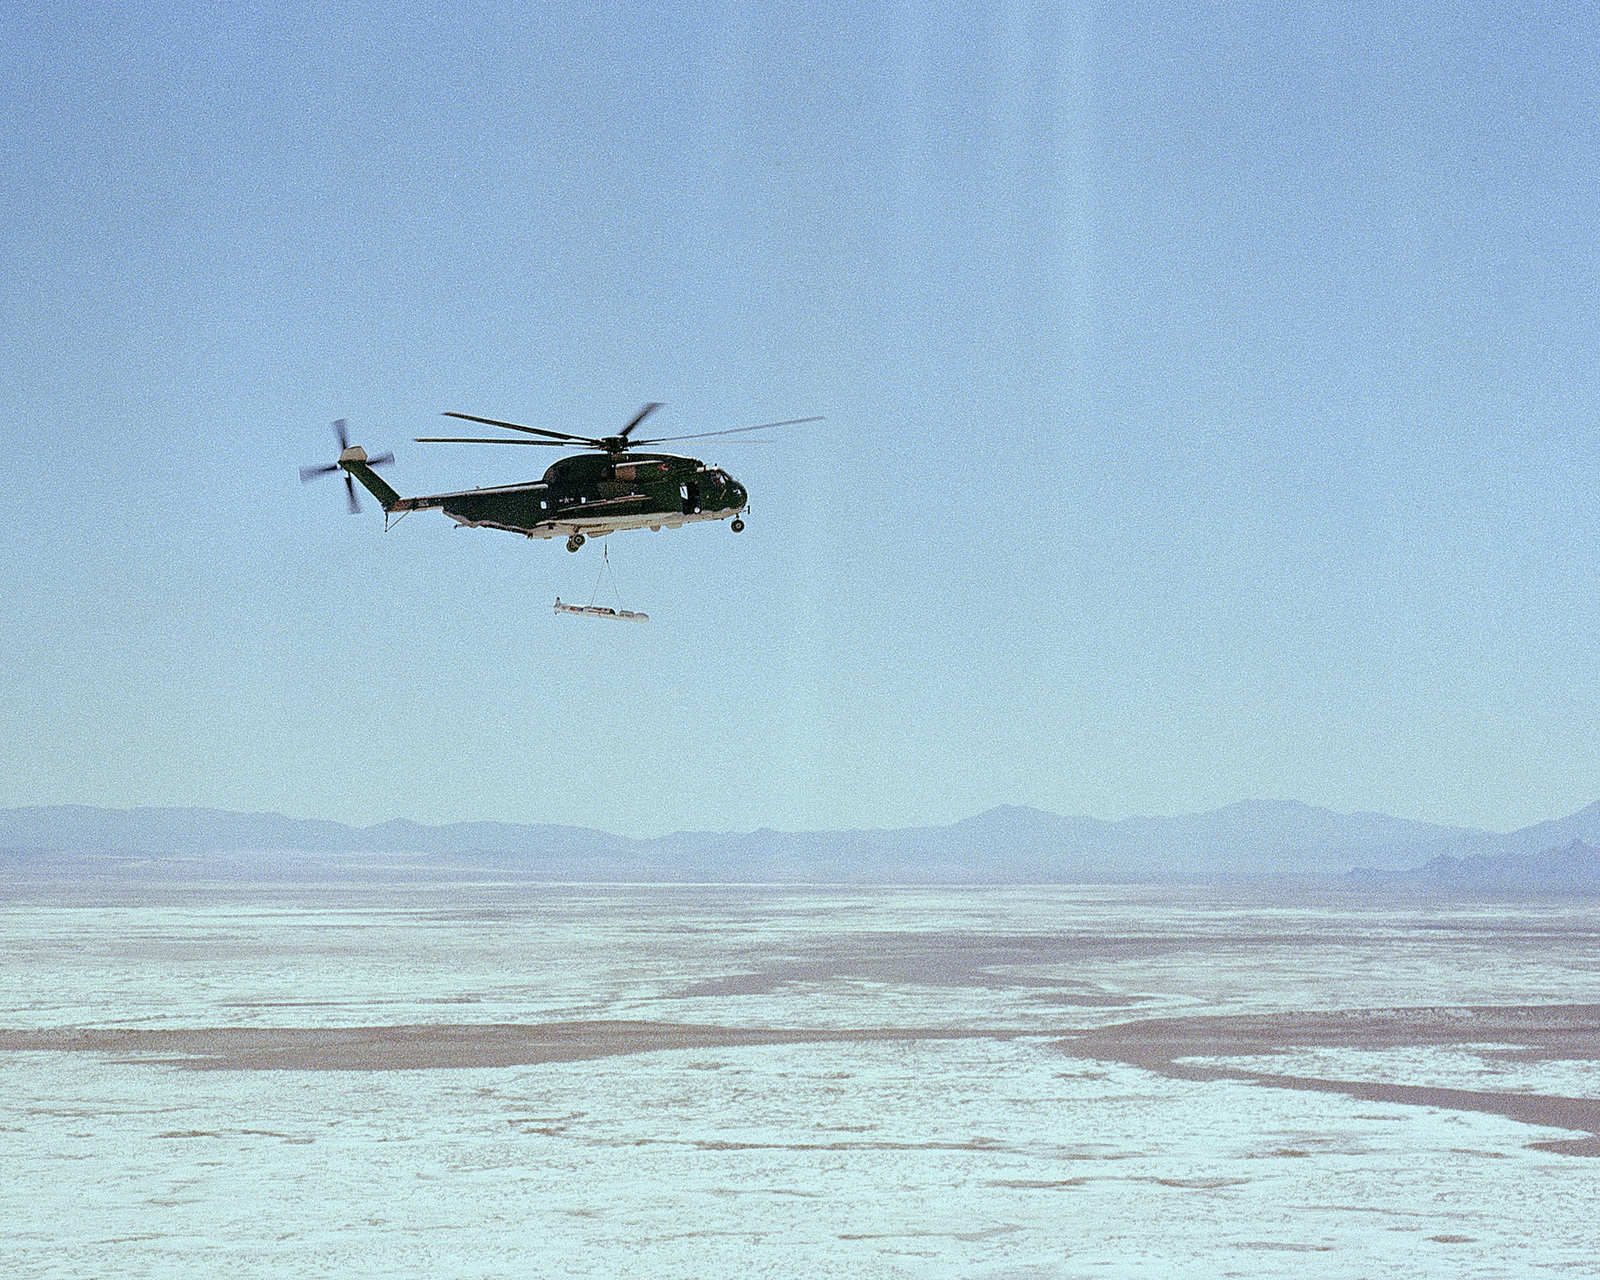 A right side view of a CH-53 Super Jolly helicopter airlifting an AGM-109 Tomahawk air-launched cruise missile during recovery operations after impact